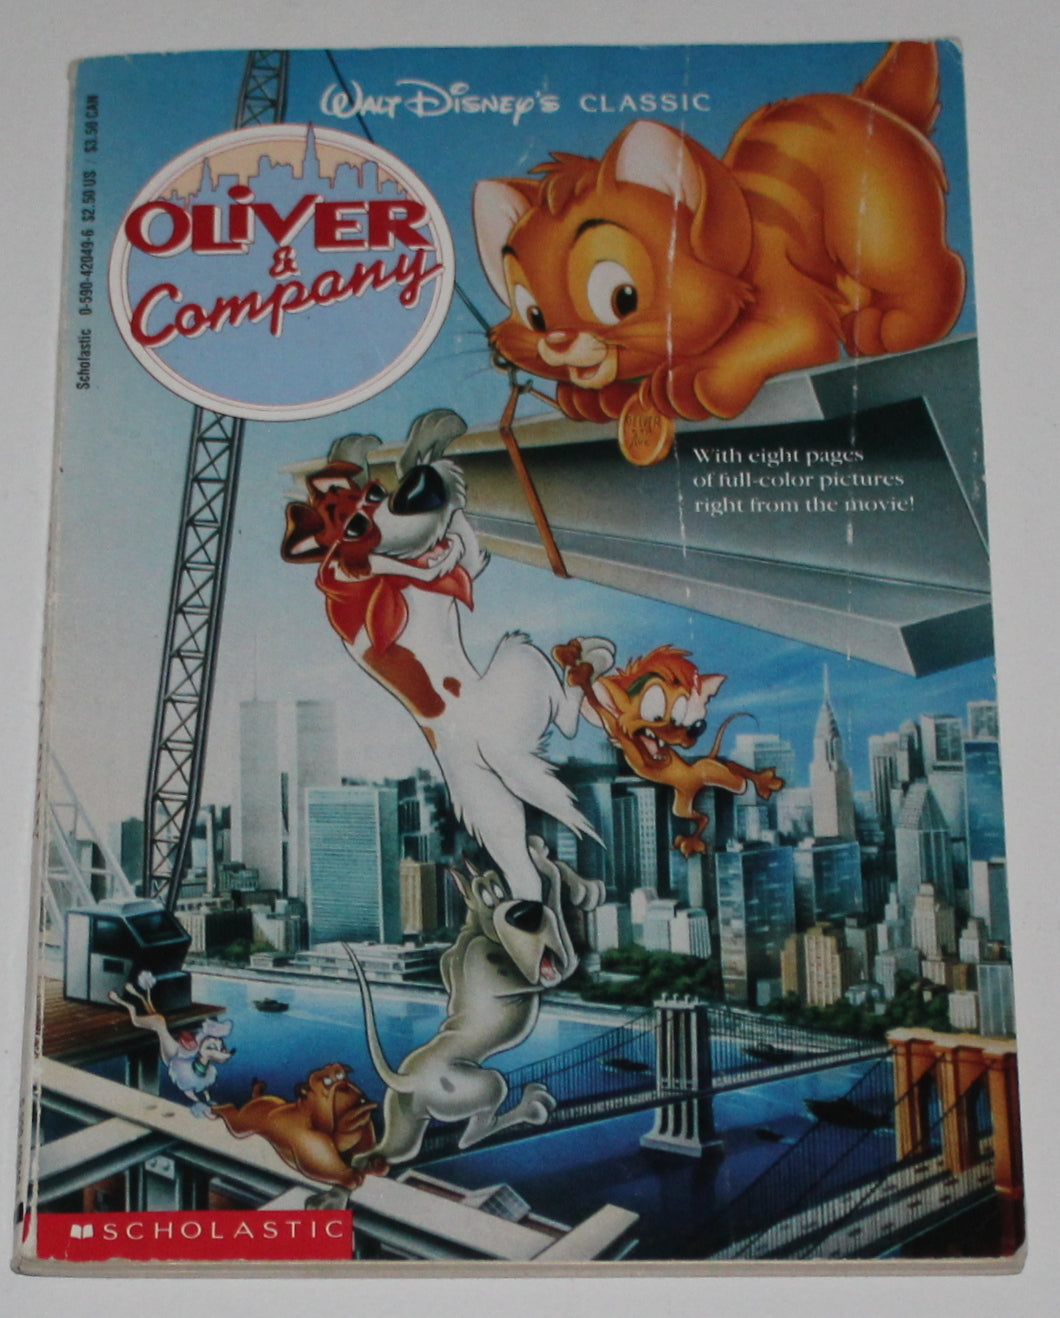 OLIVER AND COMPANY PAPERBACK BOOK